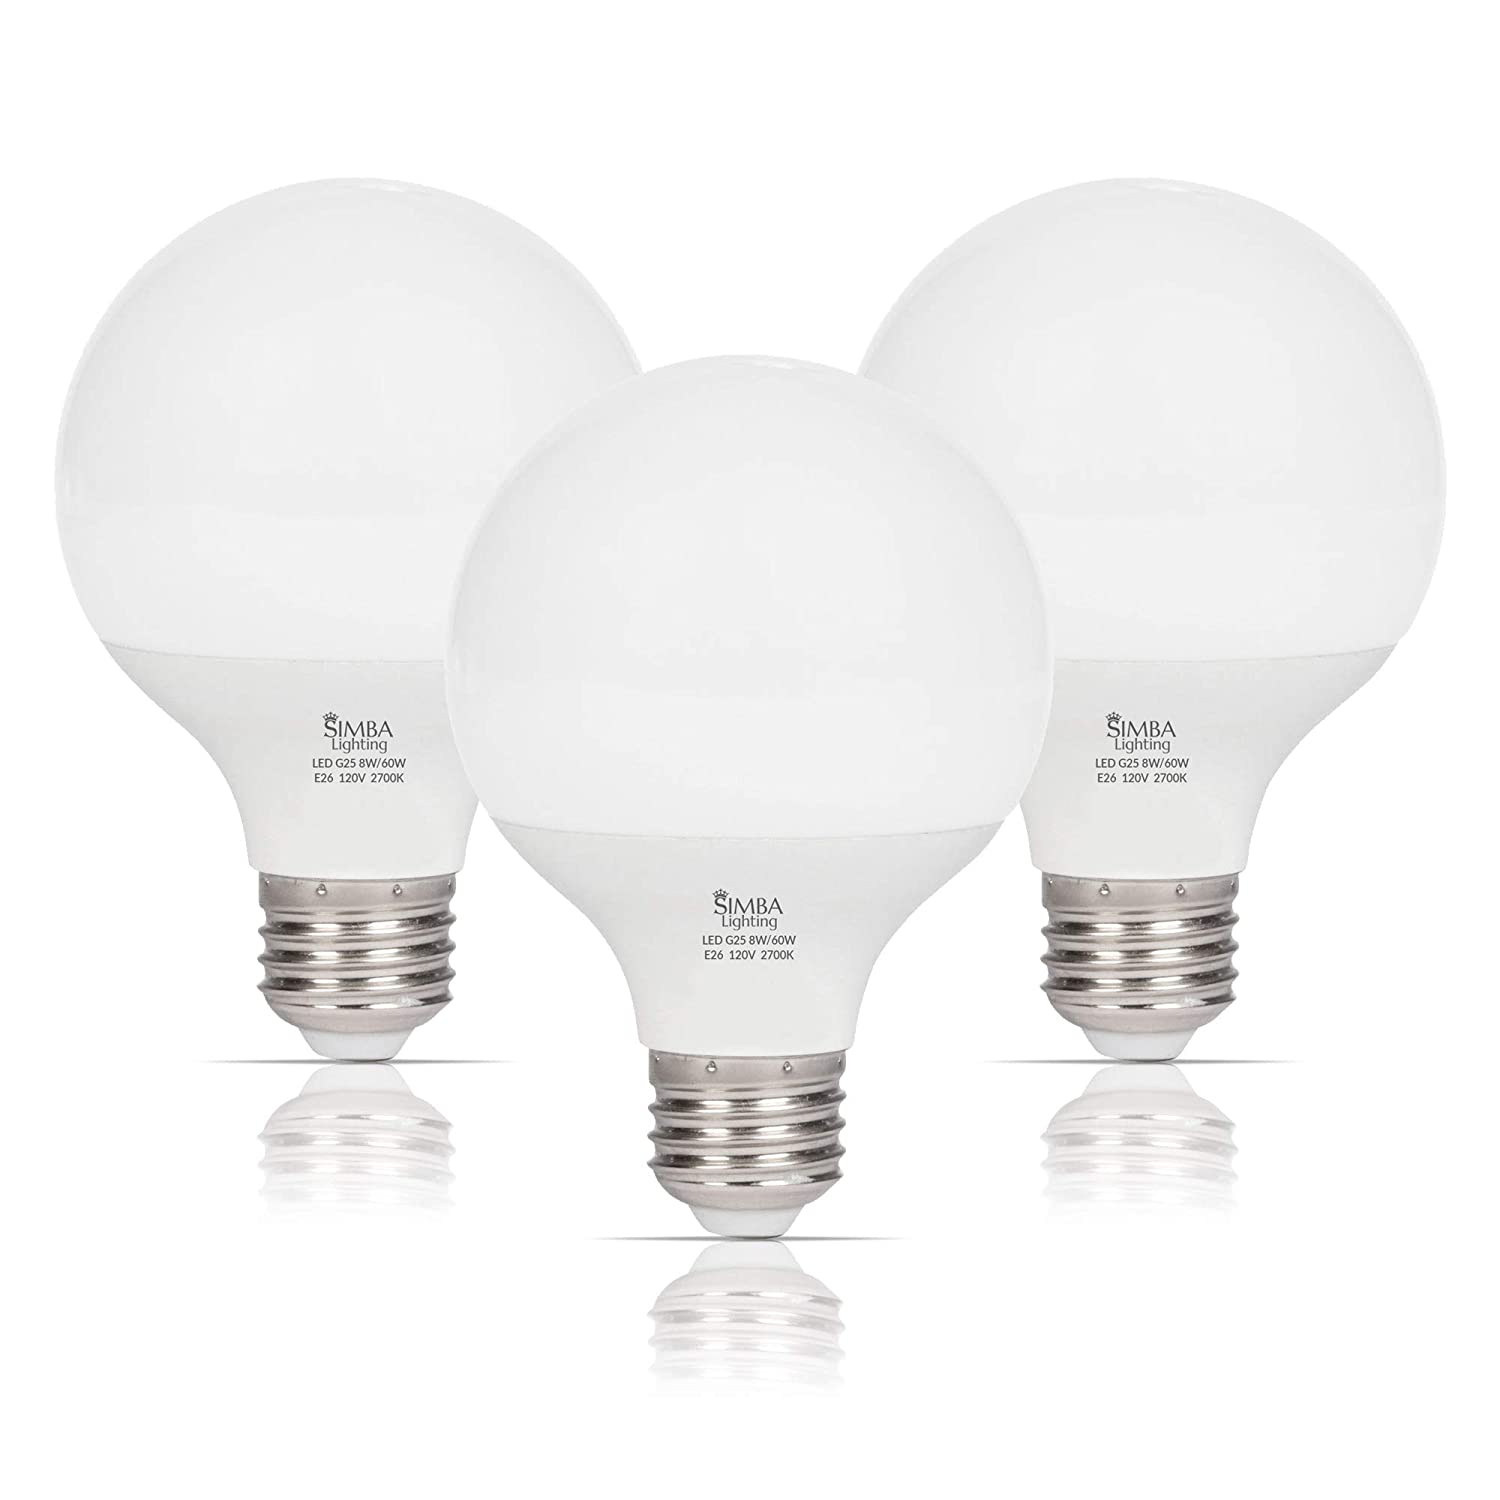 Simba Lighting LED Vanity Globe G25 (G80) Light Bulb for Bathroom, Makeup Mirror | Decorative White Frosted Cover, 8W, 60W Equivalent, 120V, Standard E26 Medium Base, Warm White 2700K, Pack of 3